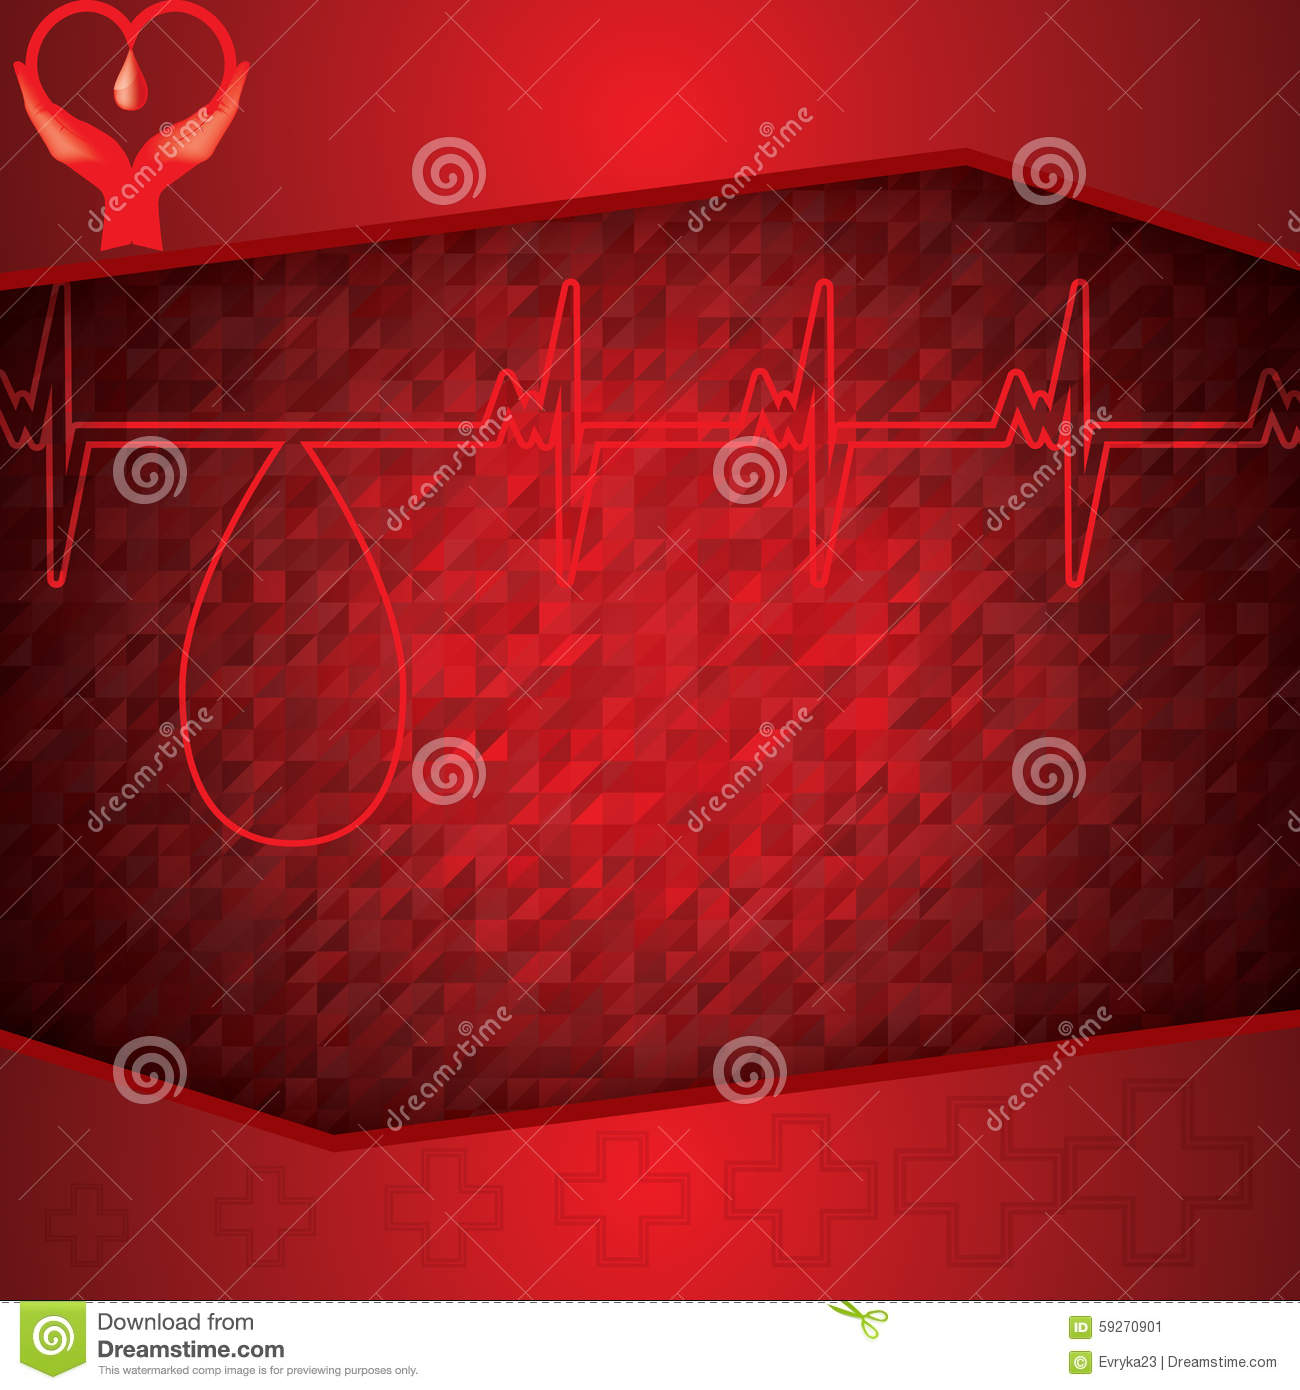 red medical background - photo #10